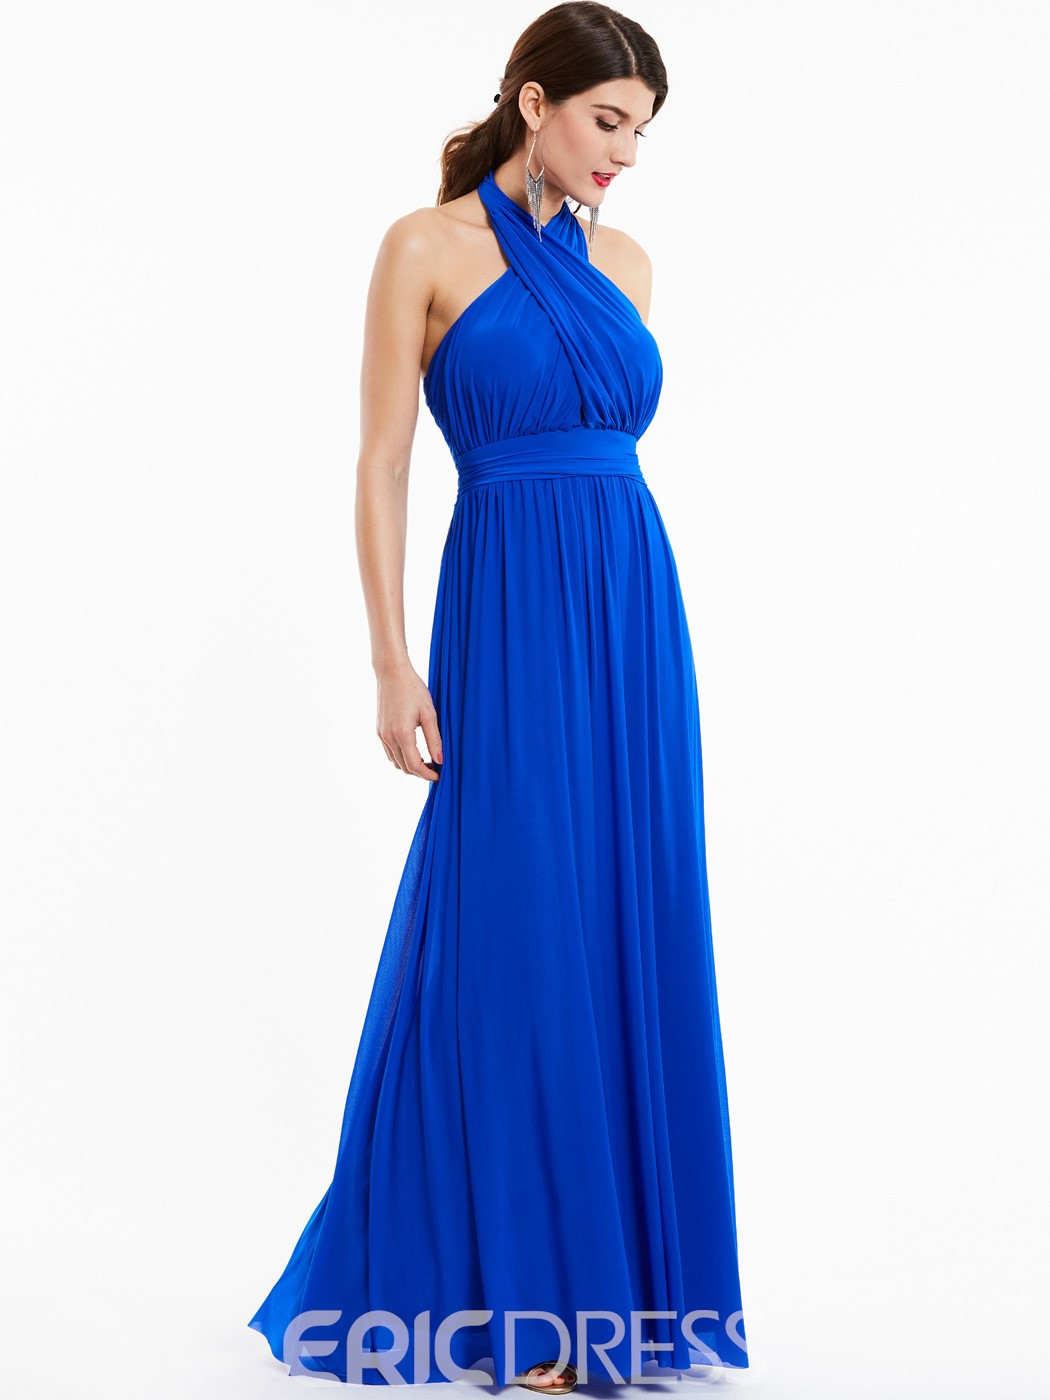 Ericdress Halter Neck Backless A Line Long Evening Dress In Floor-Length